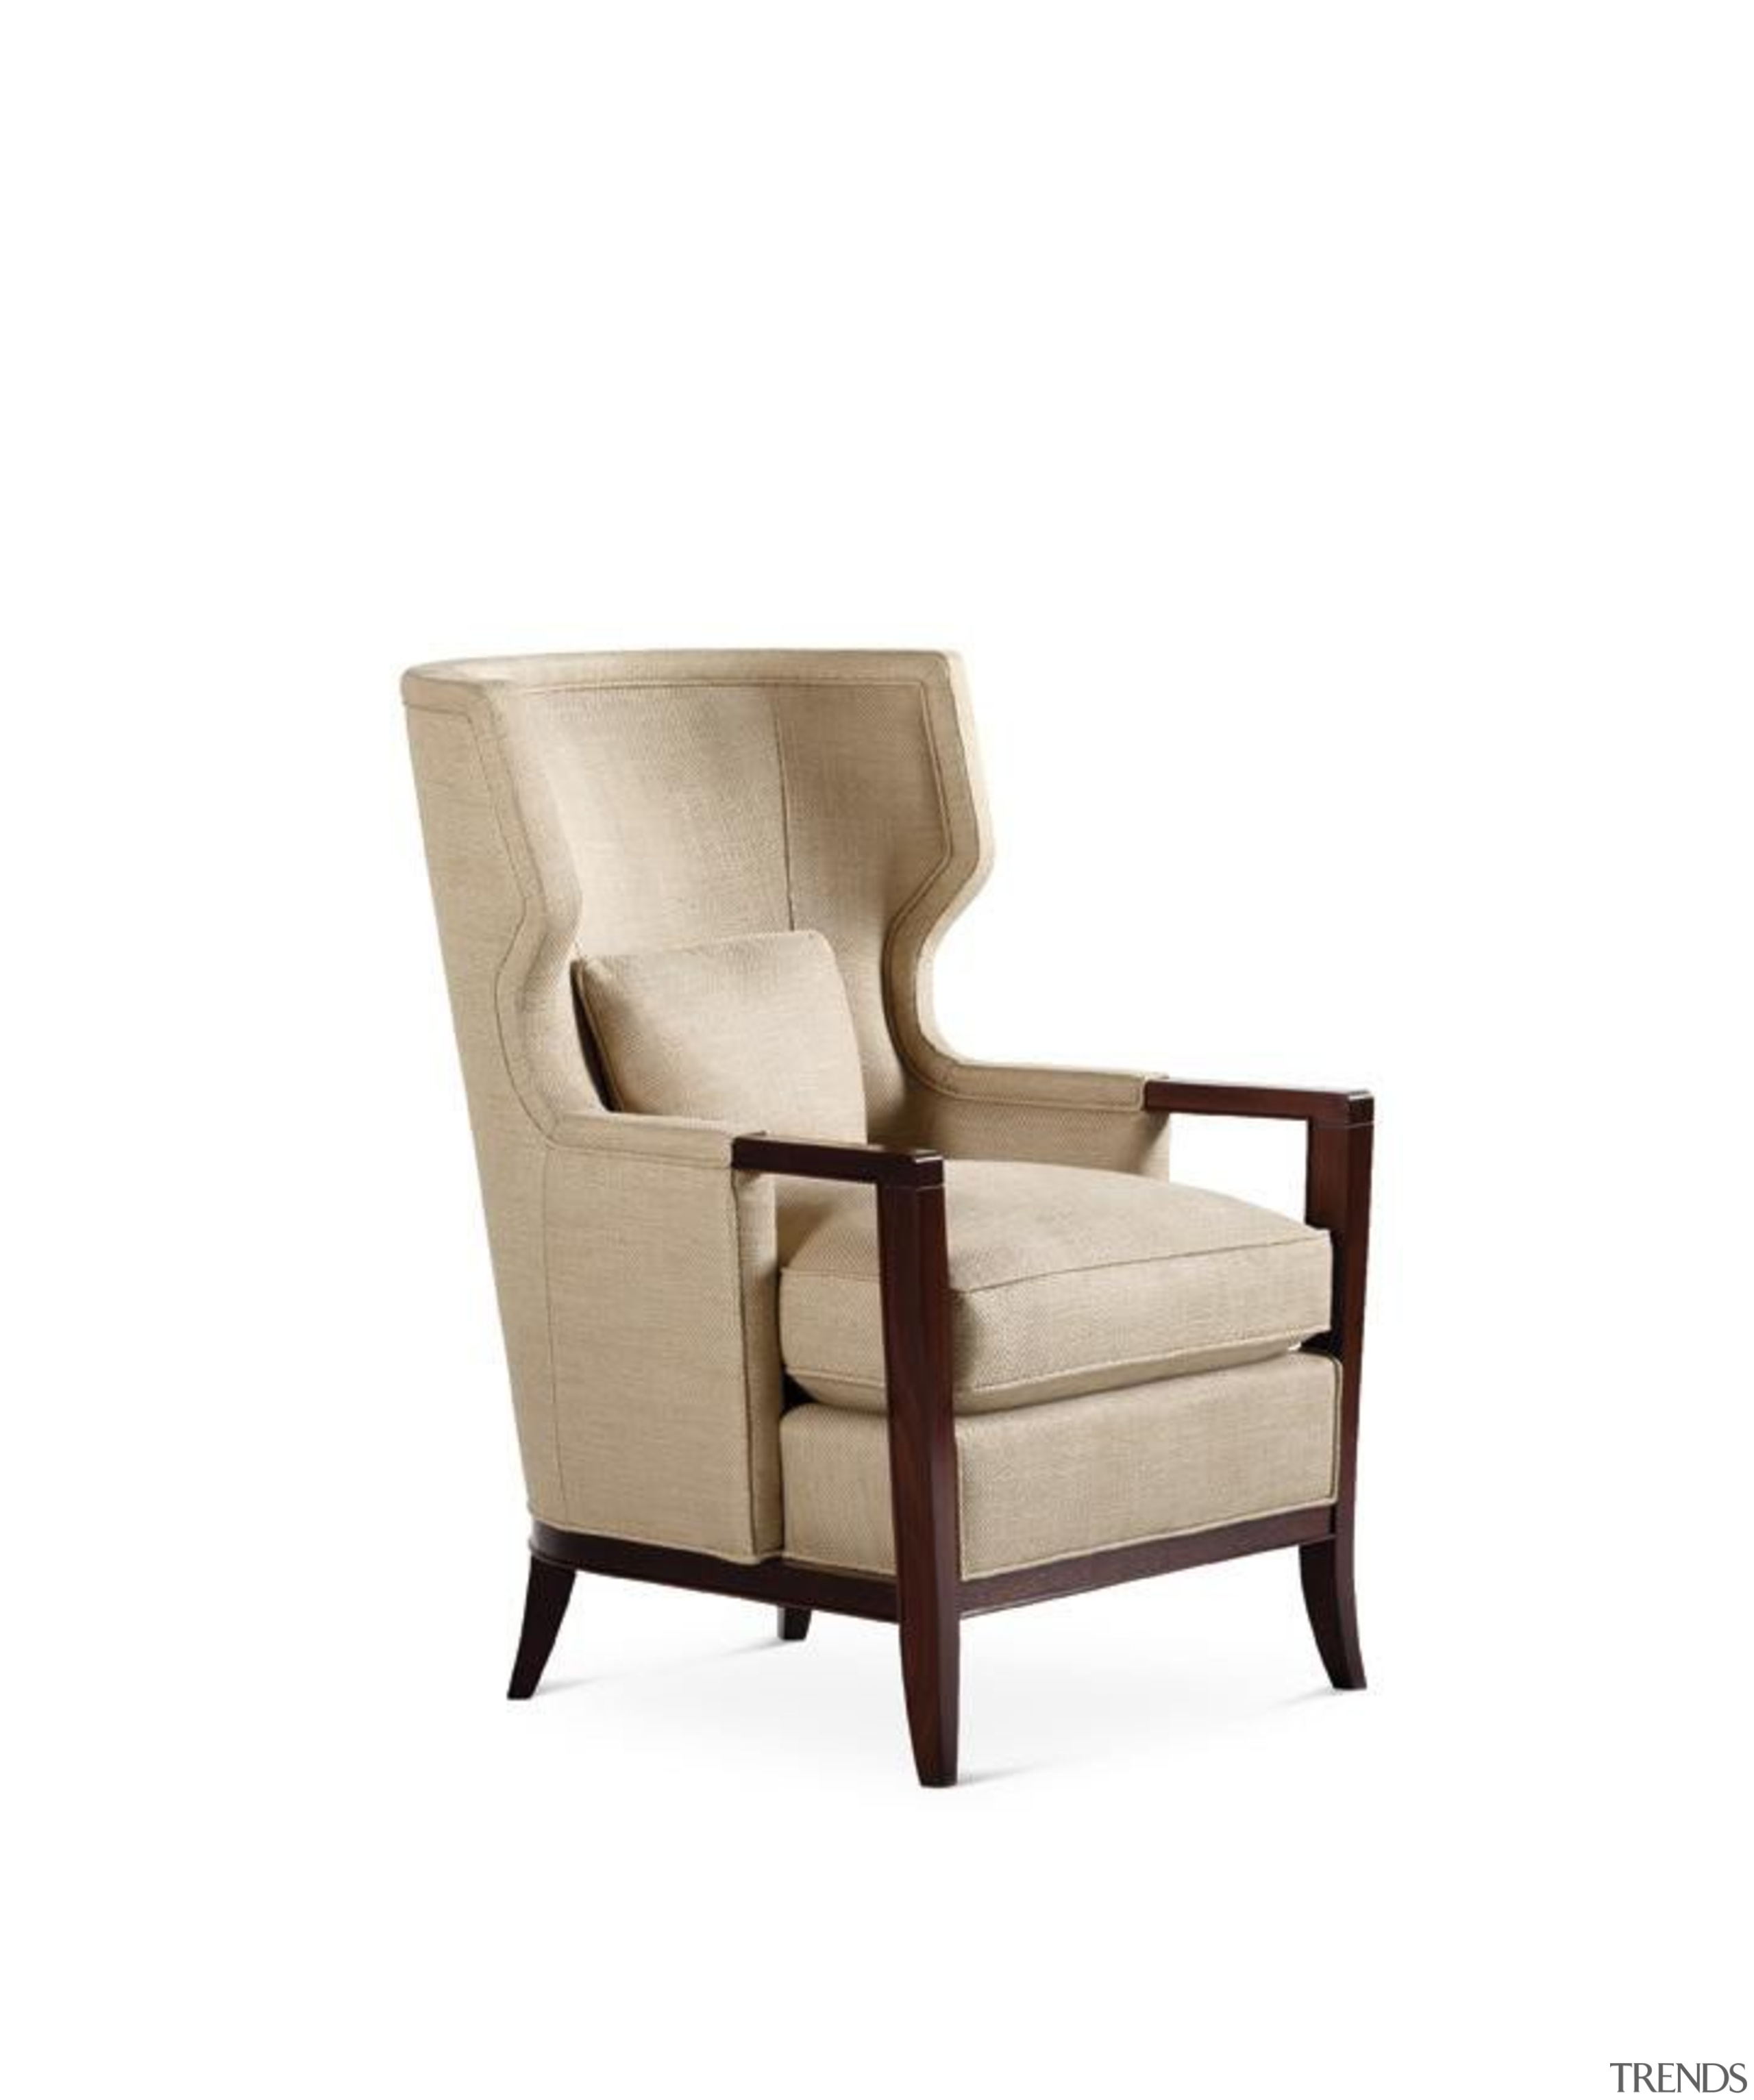 The work of William Sofield is defined not armrest, chair, club chair, furniture, product, product design, white